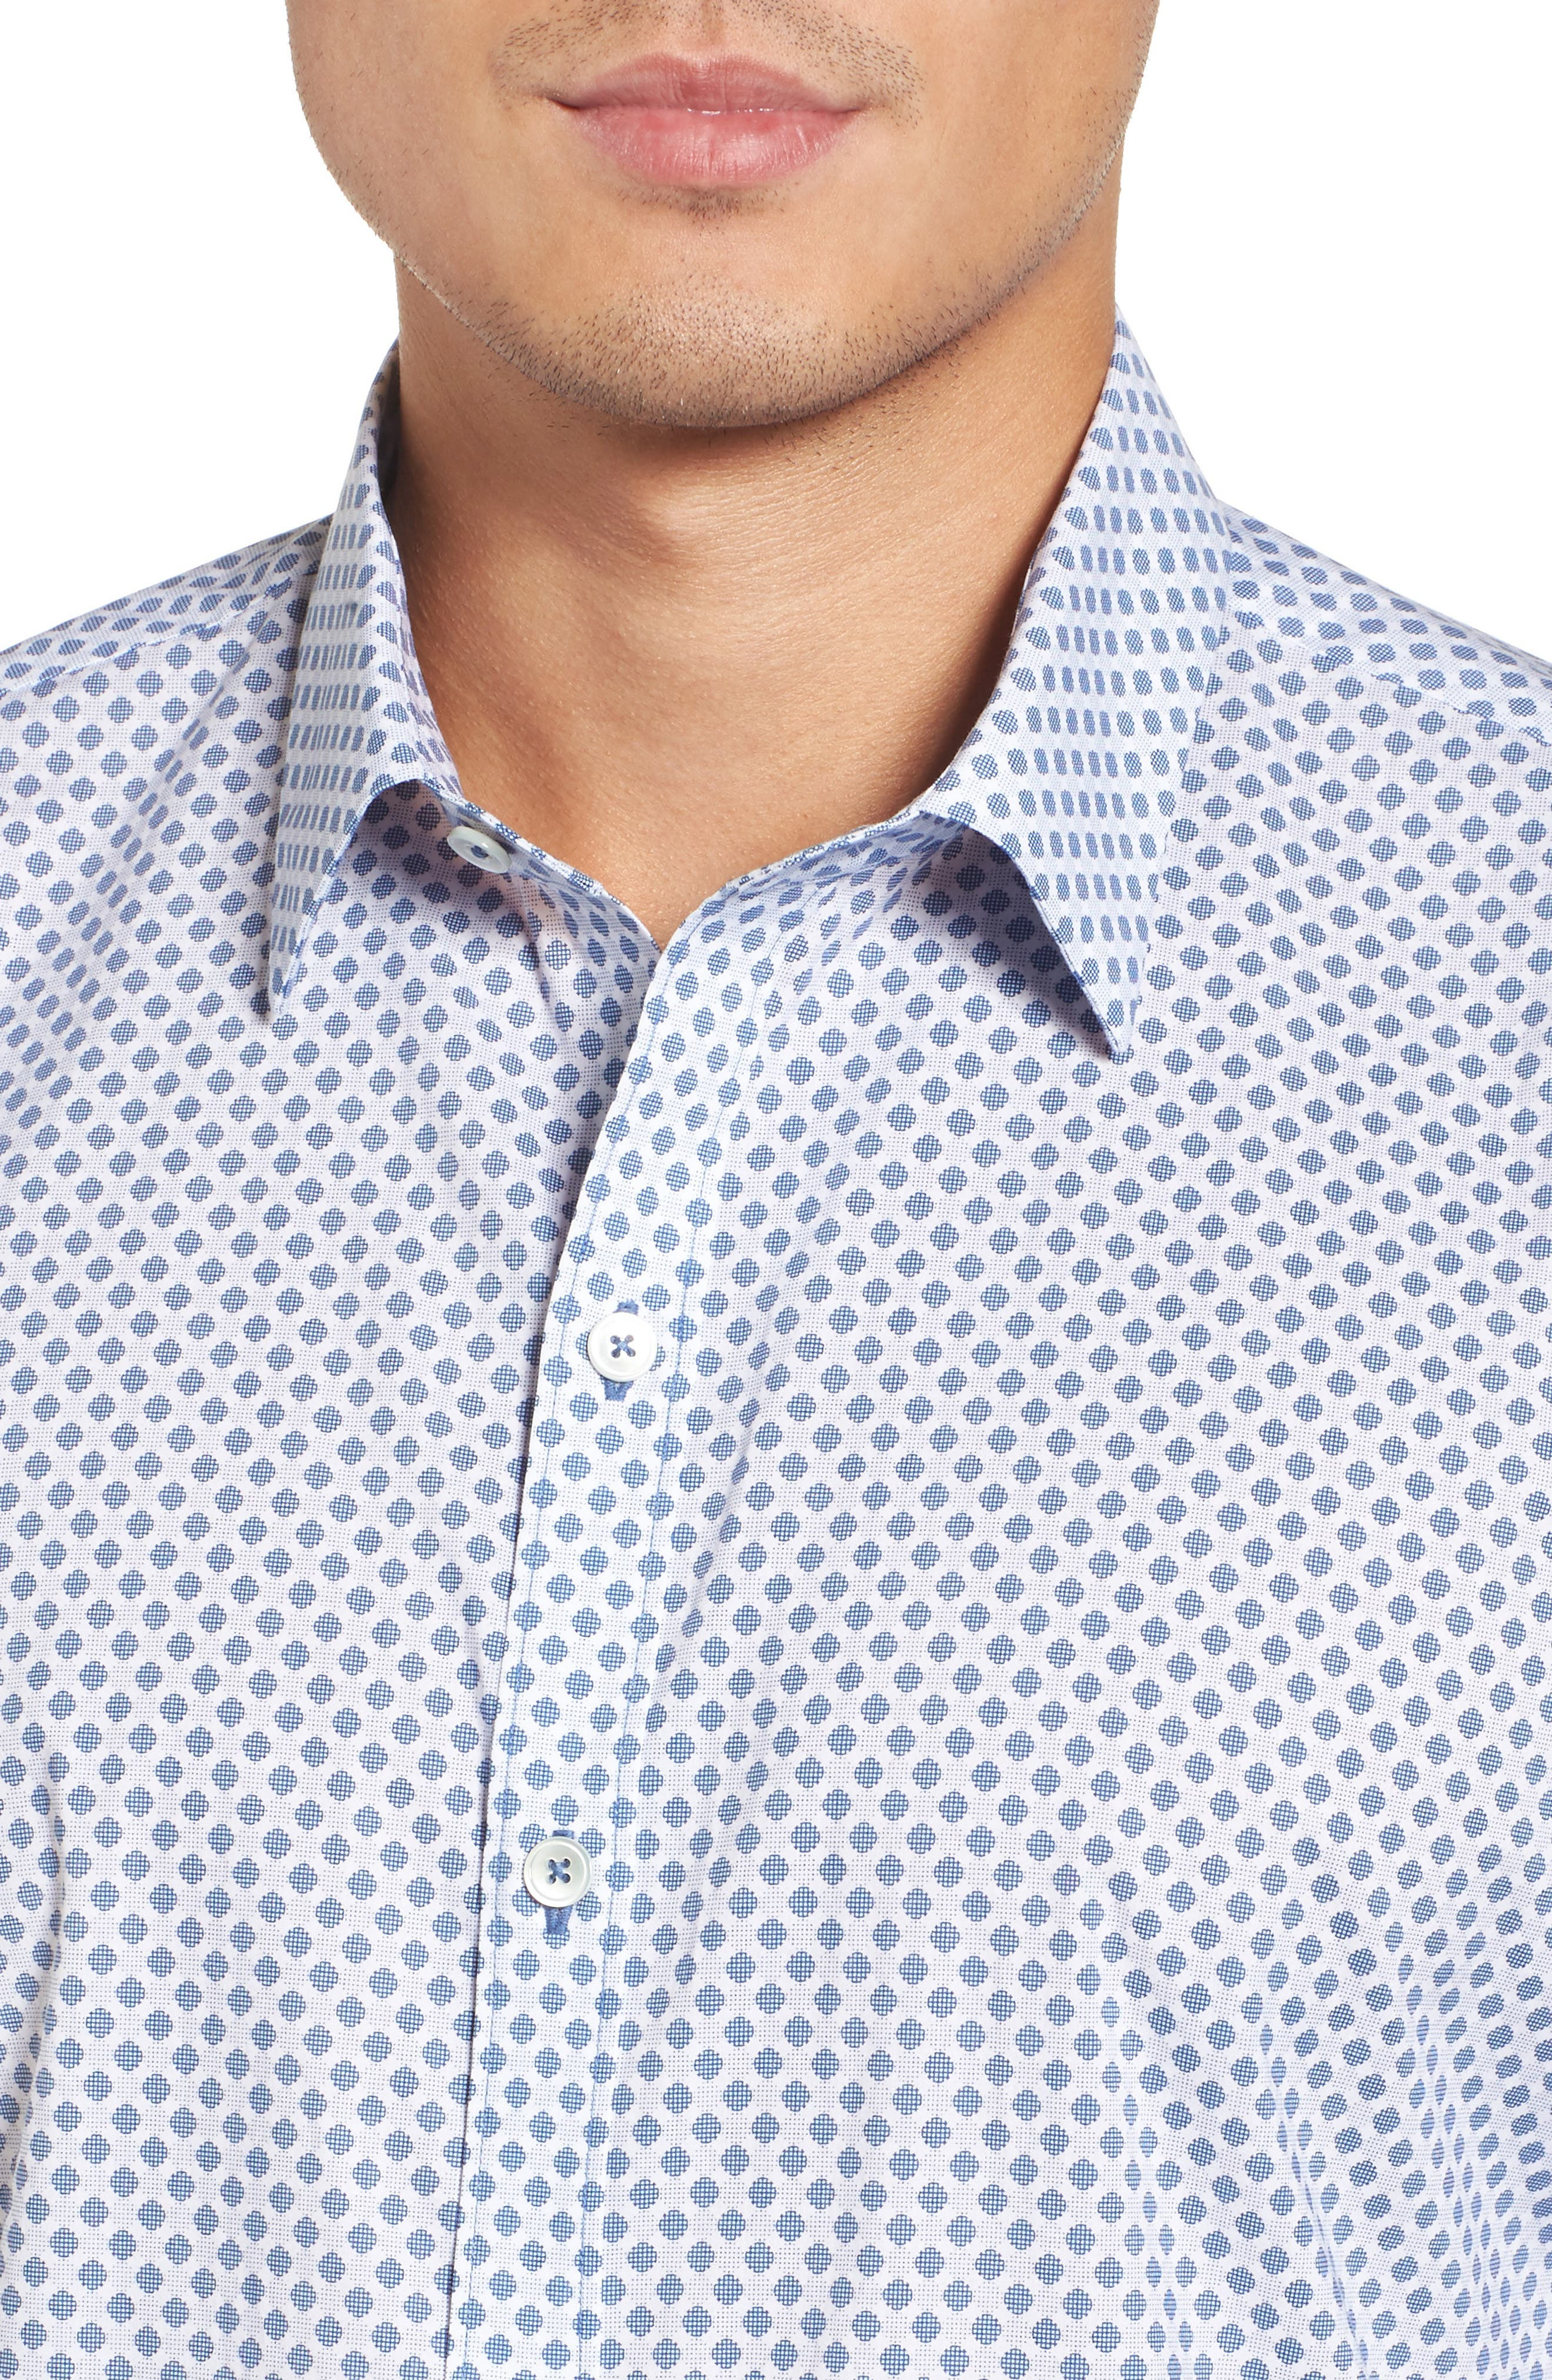 Obi Slim Fit Circle Print Sport Shirt,                             Alternate thumbnail 4, color,                             NAVY